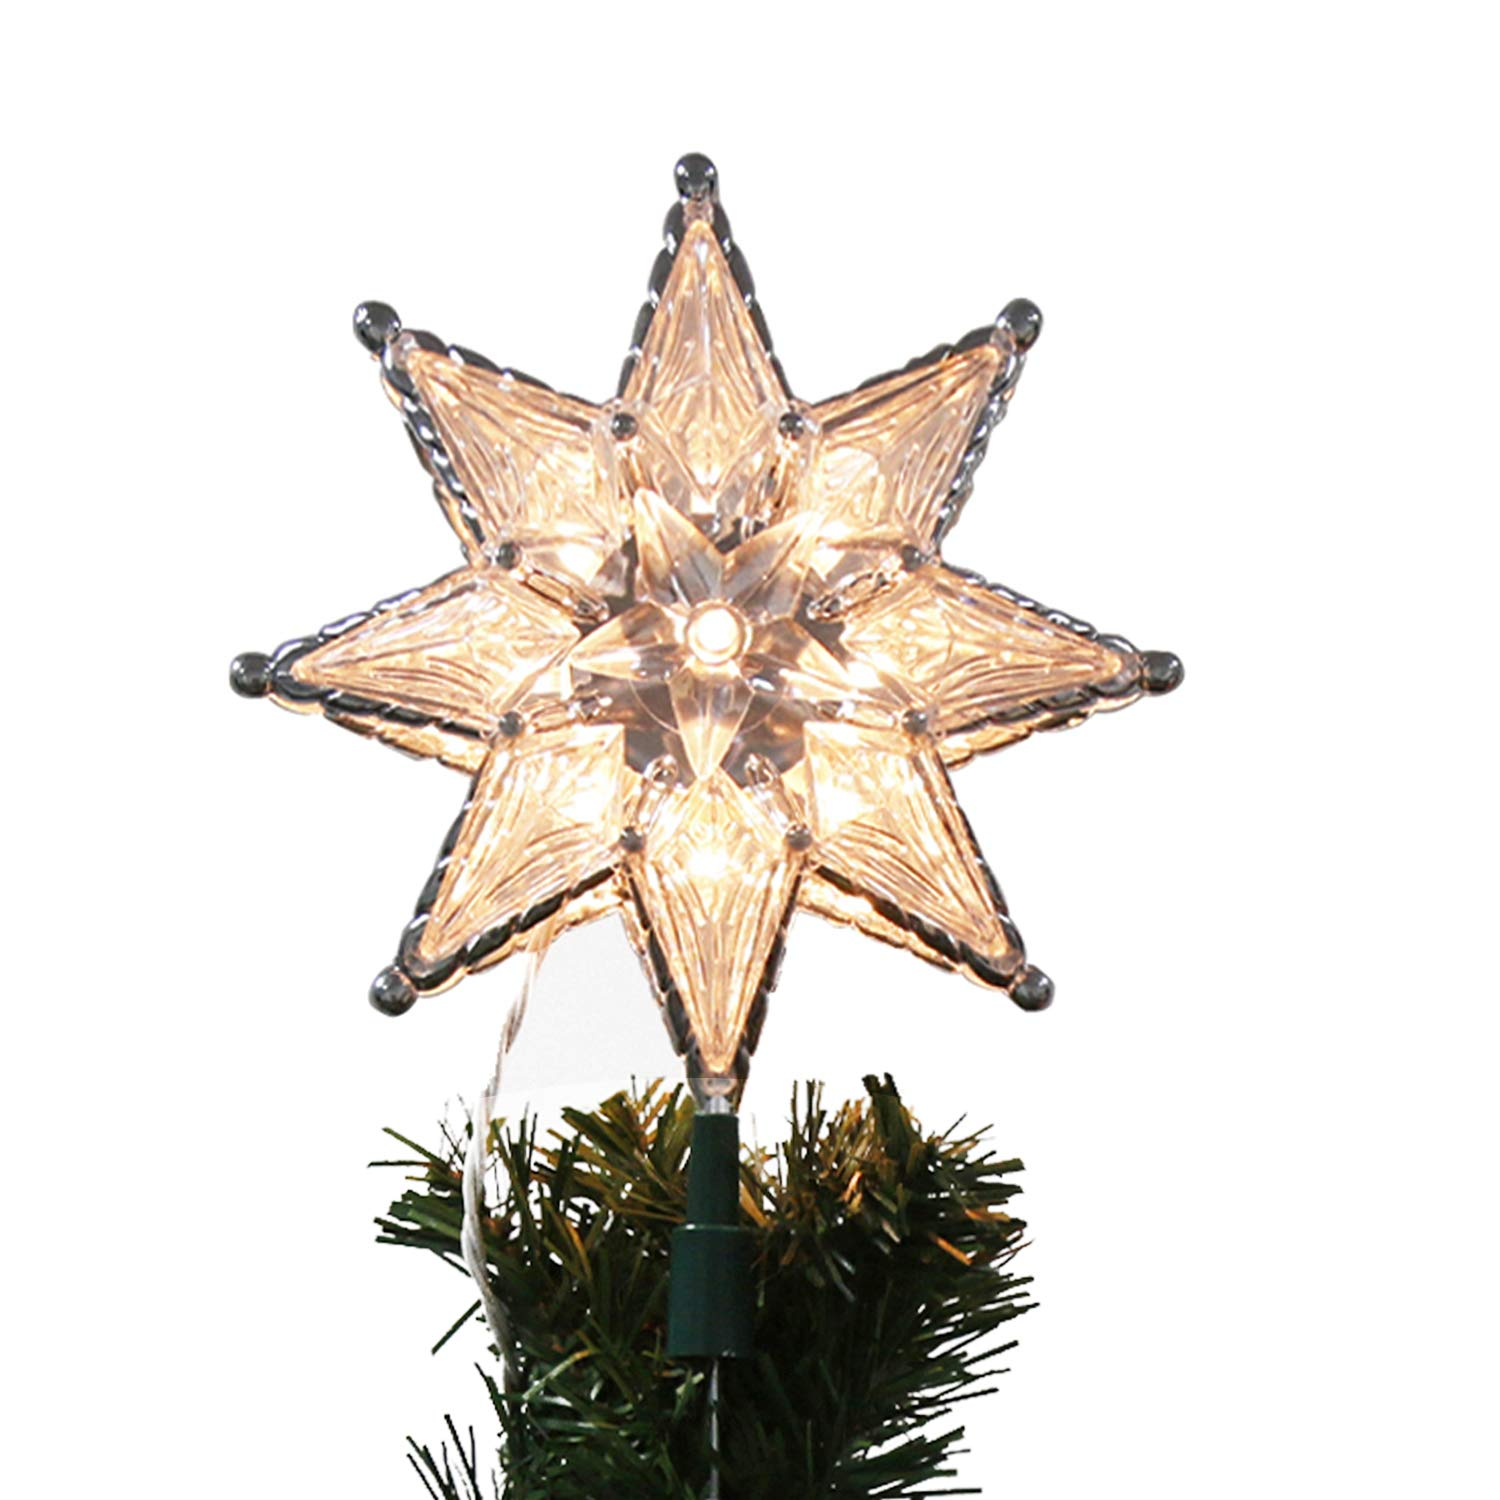 EAMBRITE 10-Light 8-Point Star Christmas Treetop for Home Party Holiday Winter Xmas Decorations, 7.5Inch 809002